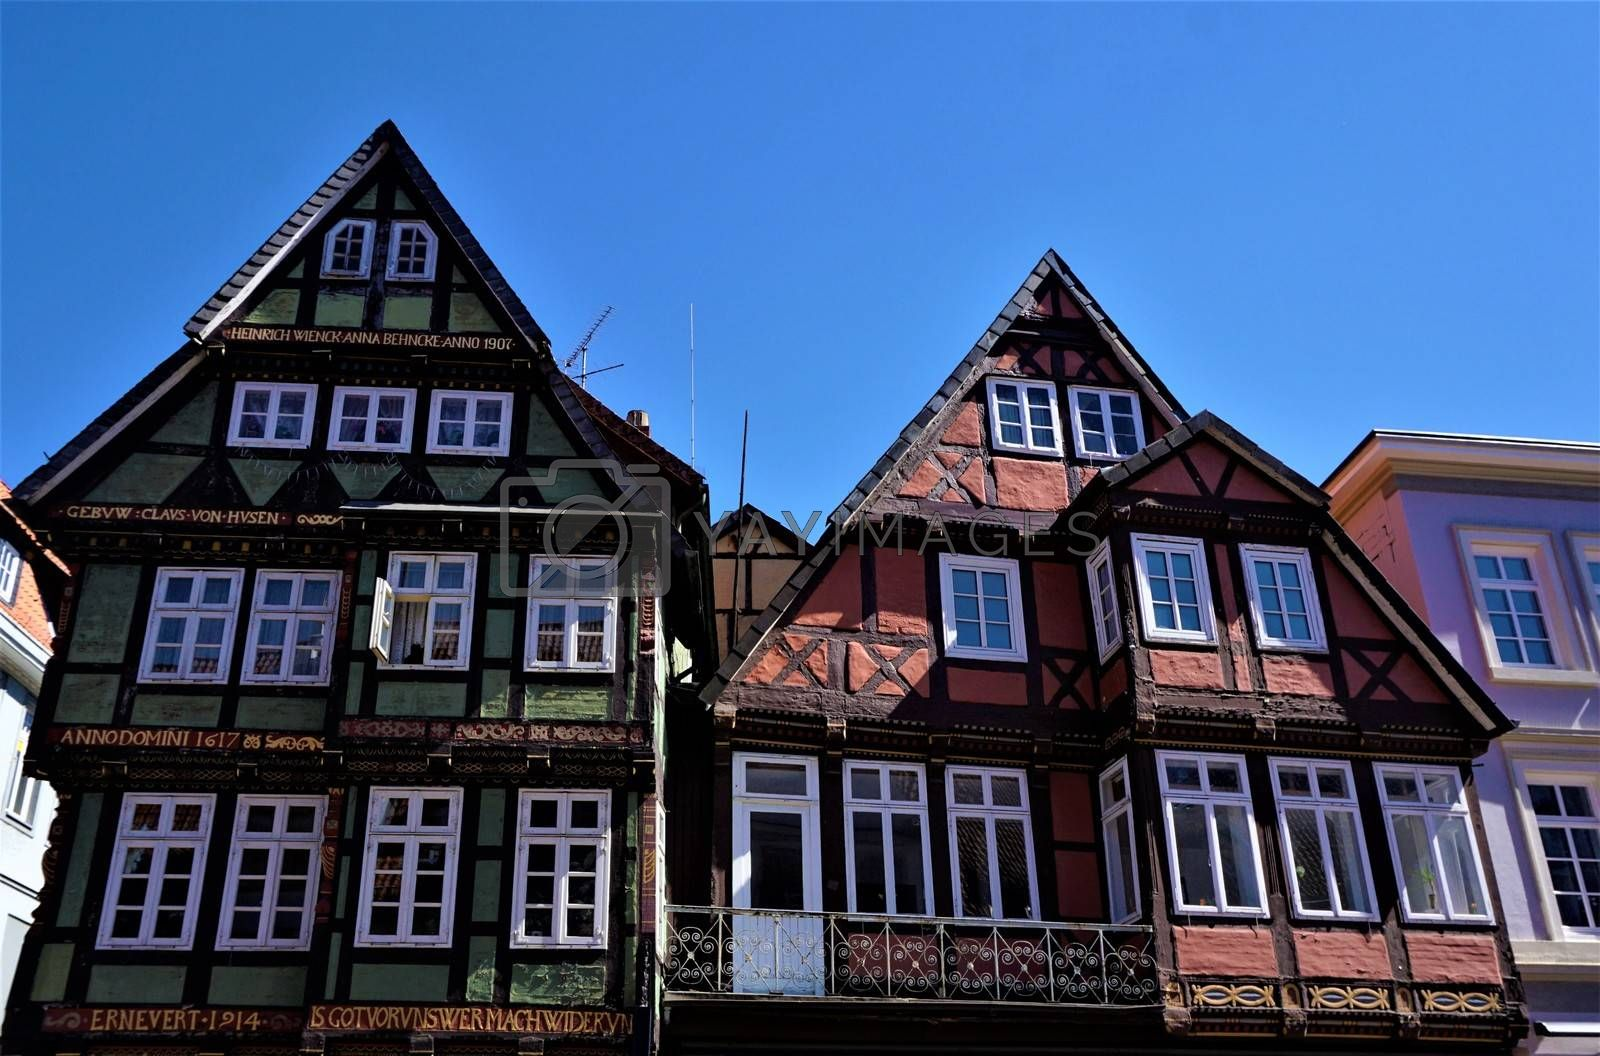 Green and pink half-timbered house in the old town of Celle, Germany